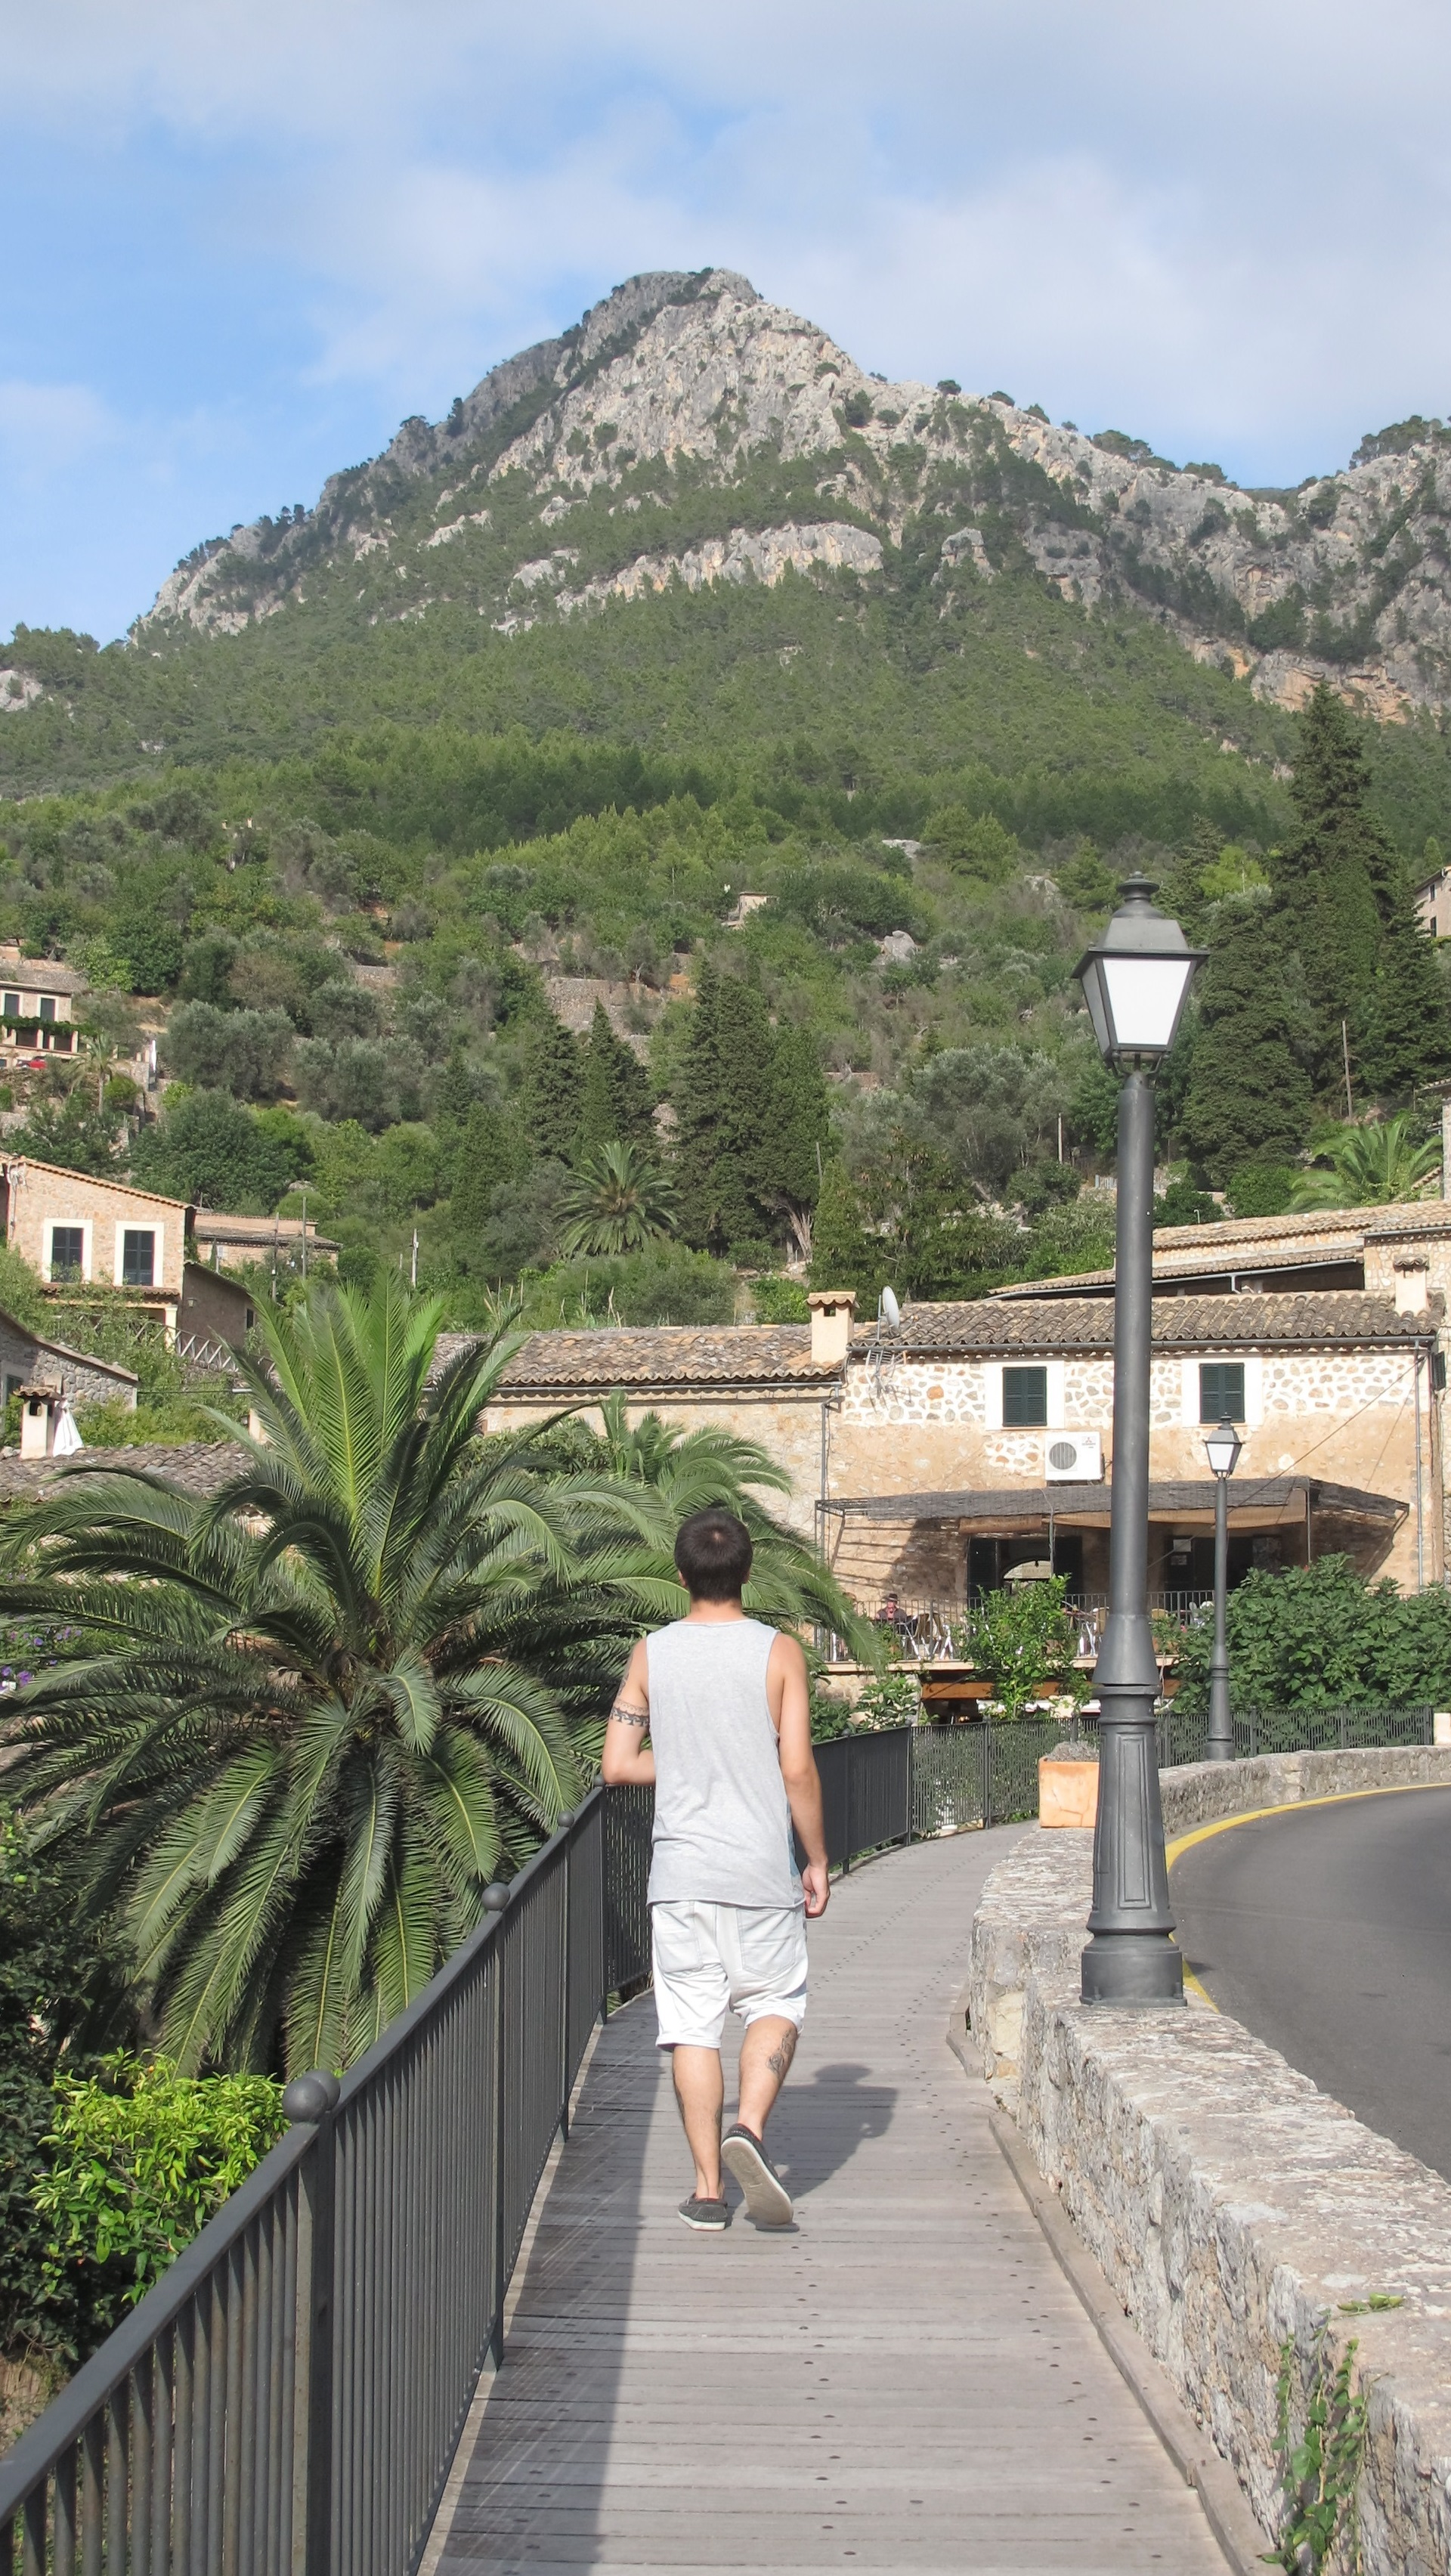 valldemosa hindu personals Looking for cheap hotels in magaluf, spain from budget magaluf hotels to 5 star all inclusive, get a great hotel deal on sunshinecouk we're fully atol protected, and with hotel deposits.